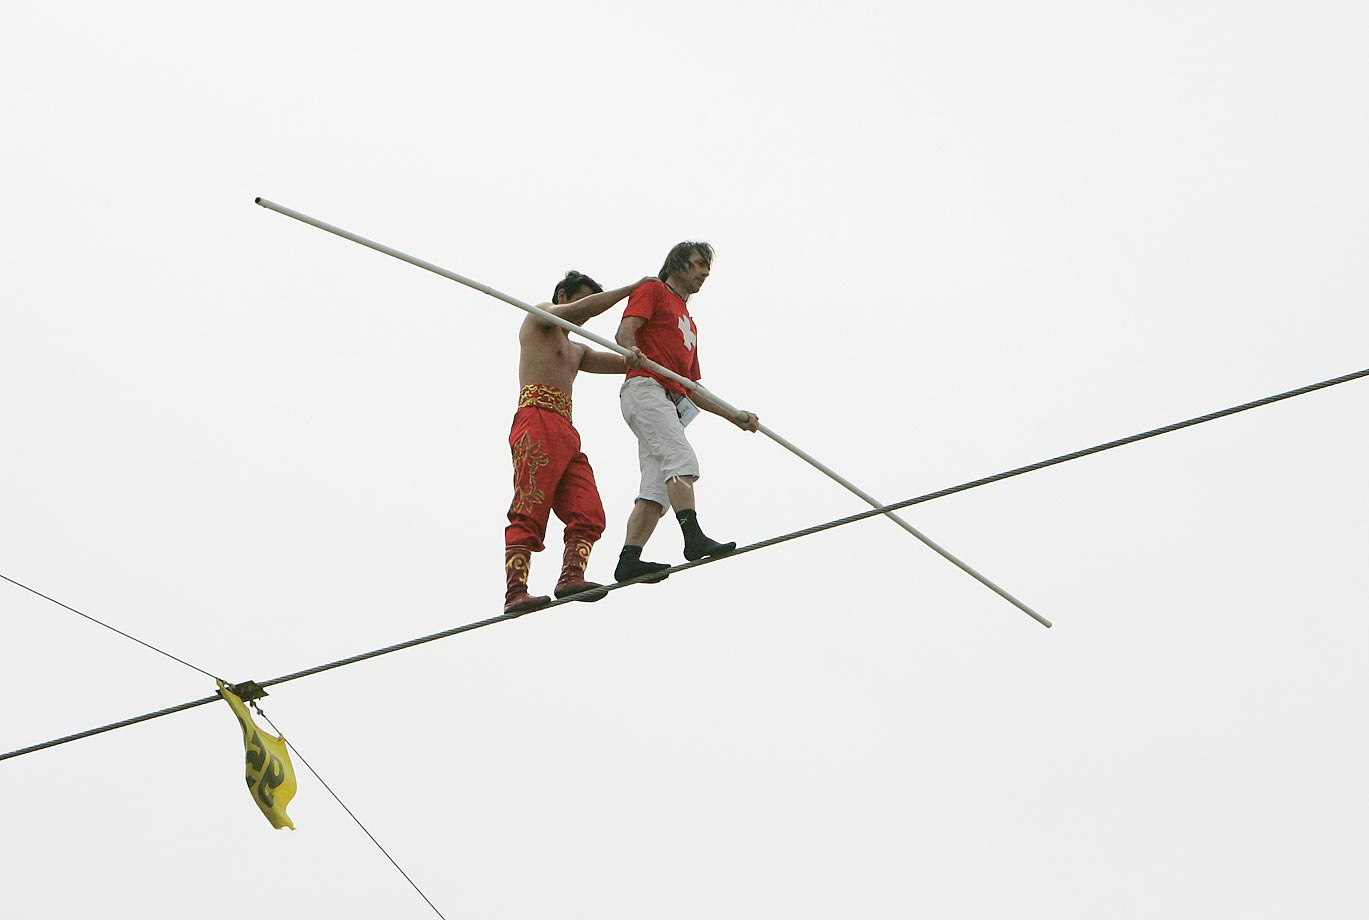 Alfred Nock Junior (right) of Switzerland helps Ya Kefujiang Maimitili of China after Ya dropped his bar during the speed race of the 2009 Hangang High Wire World Championship.